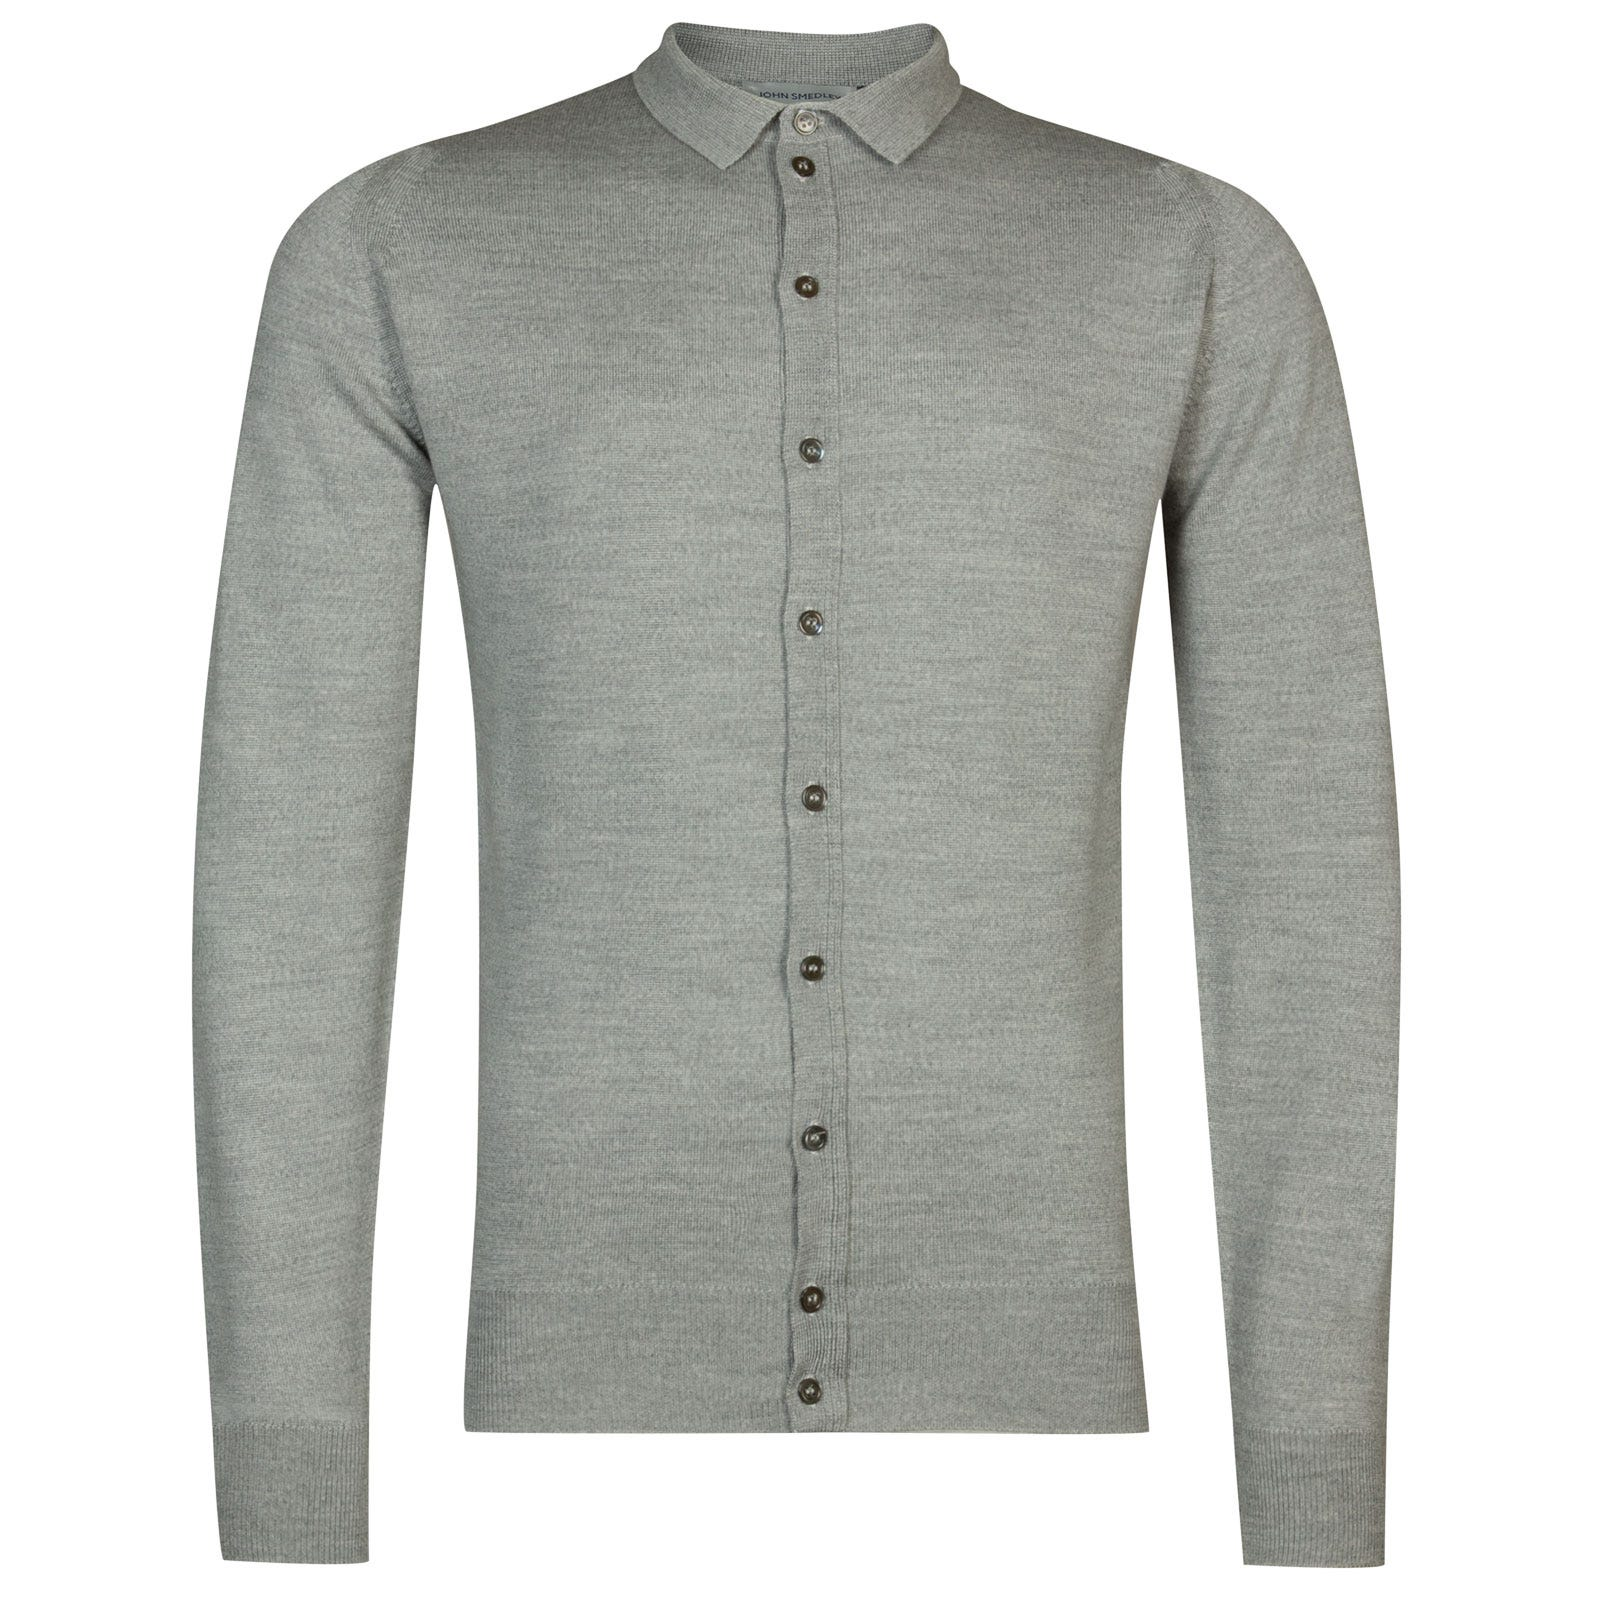 John Smedley parwish Merino Wool Shirt in Bardot Grey-M